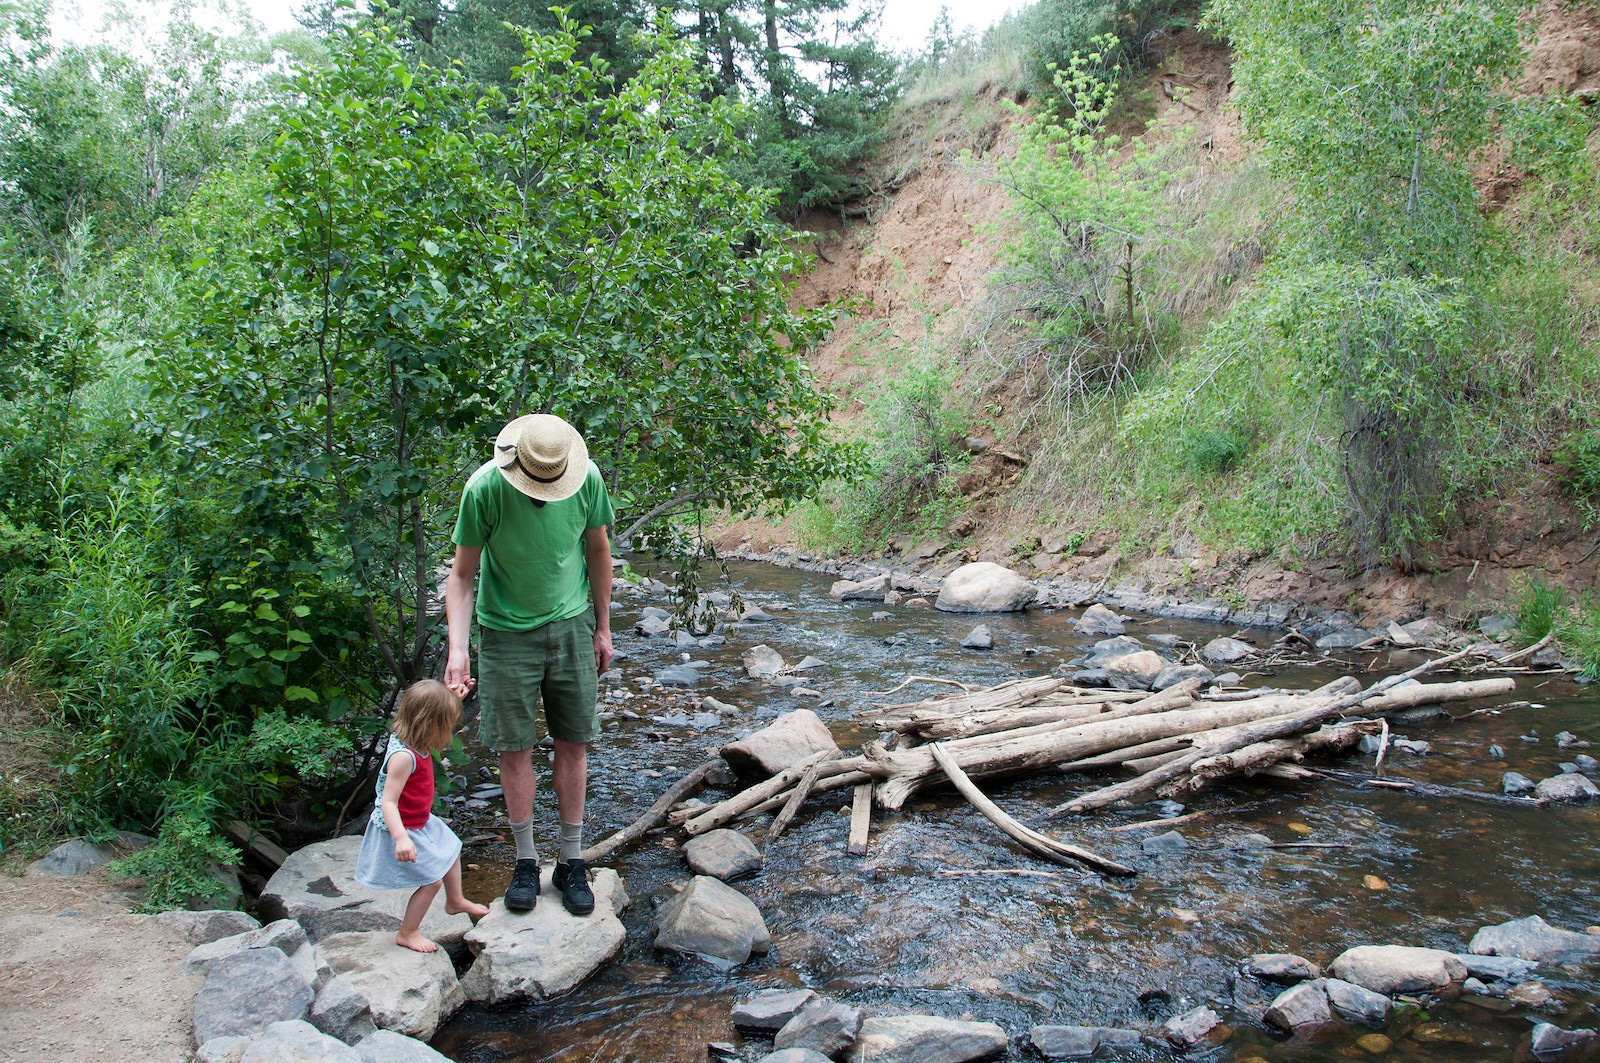 Image of a father and child crossing a creek at Lair o' the Bear Park in Idledale, Colorado